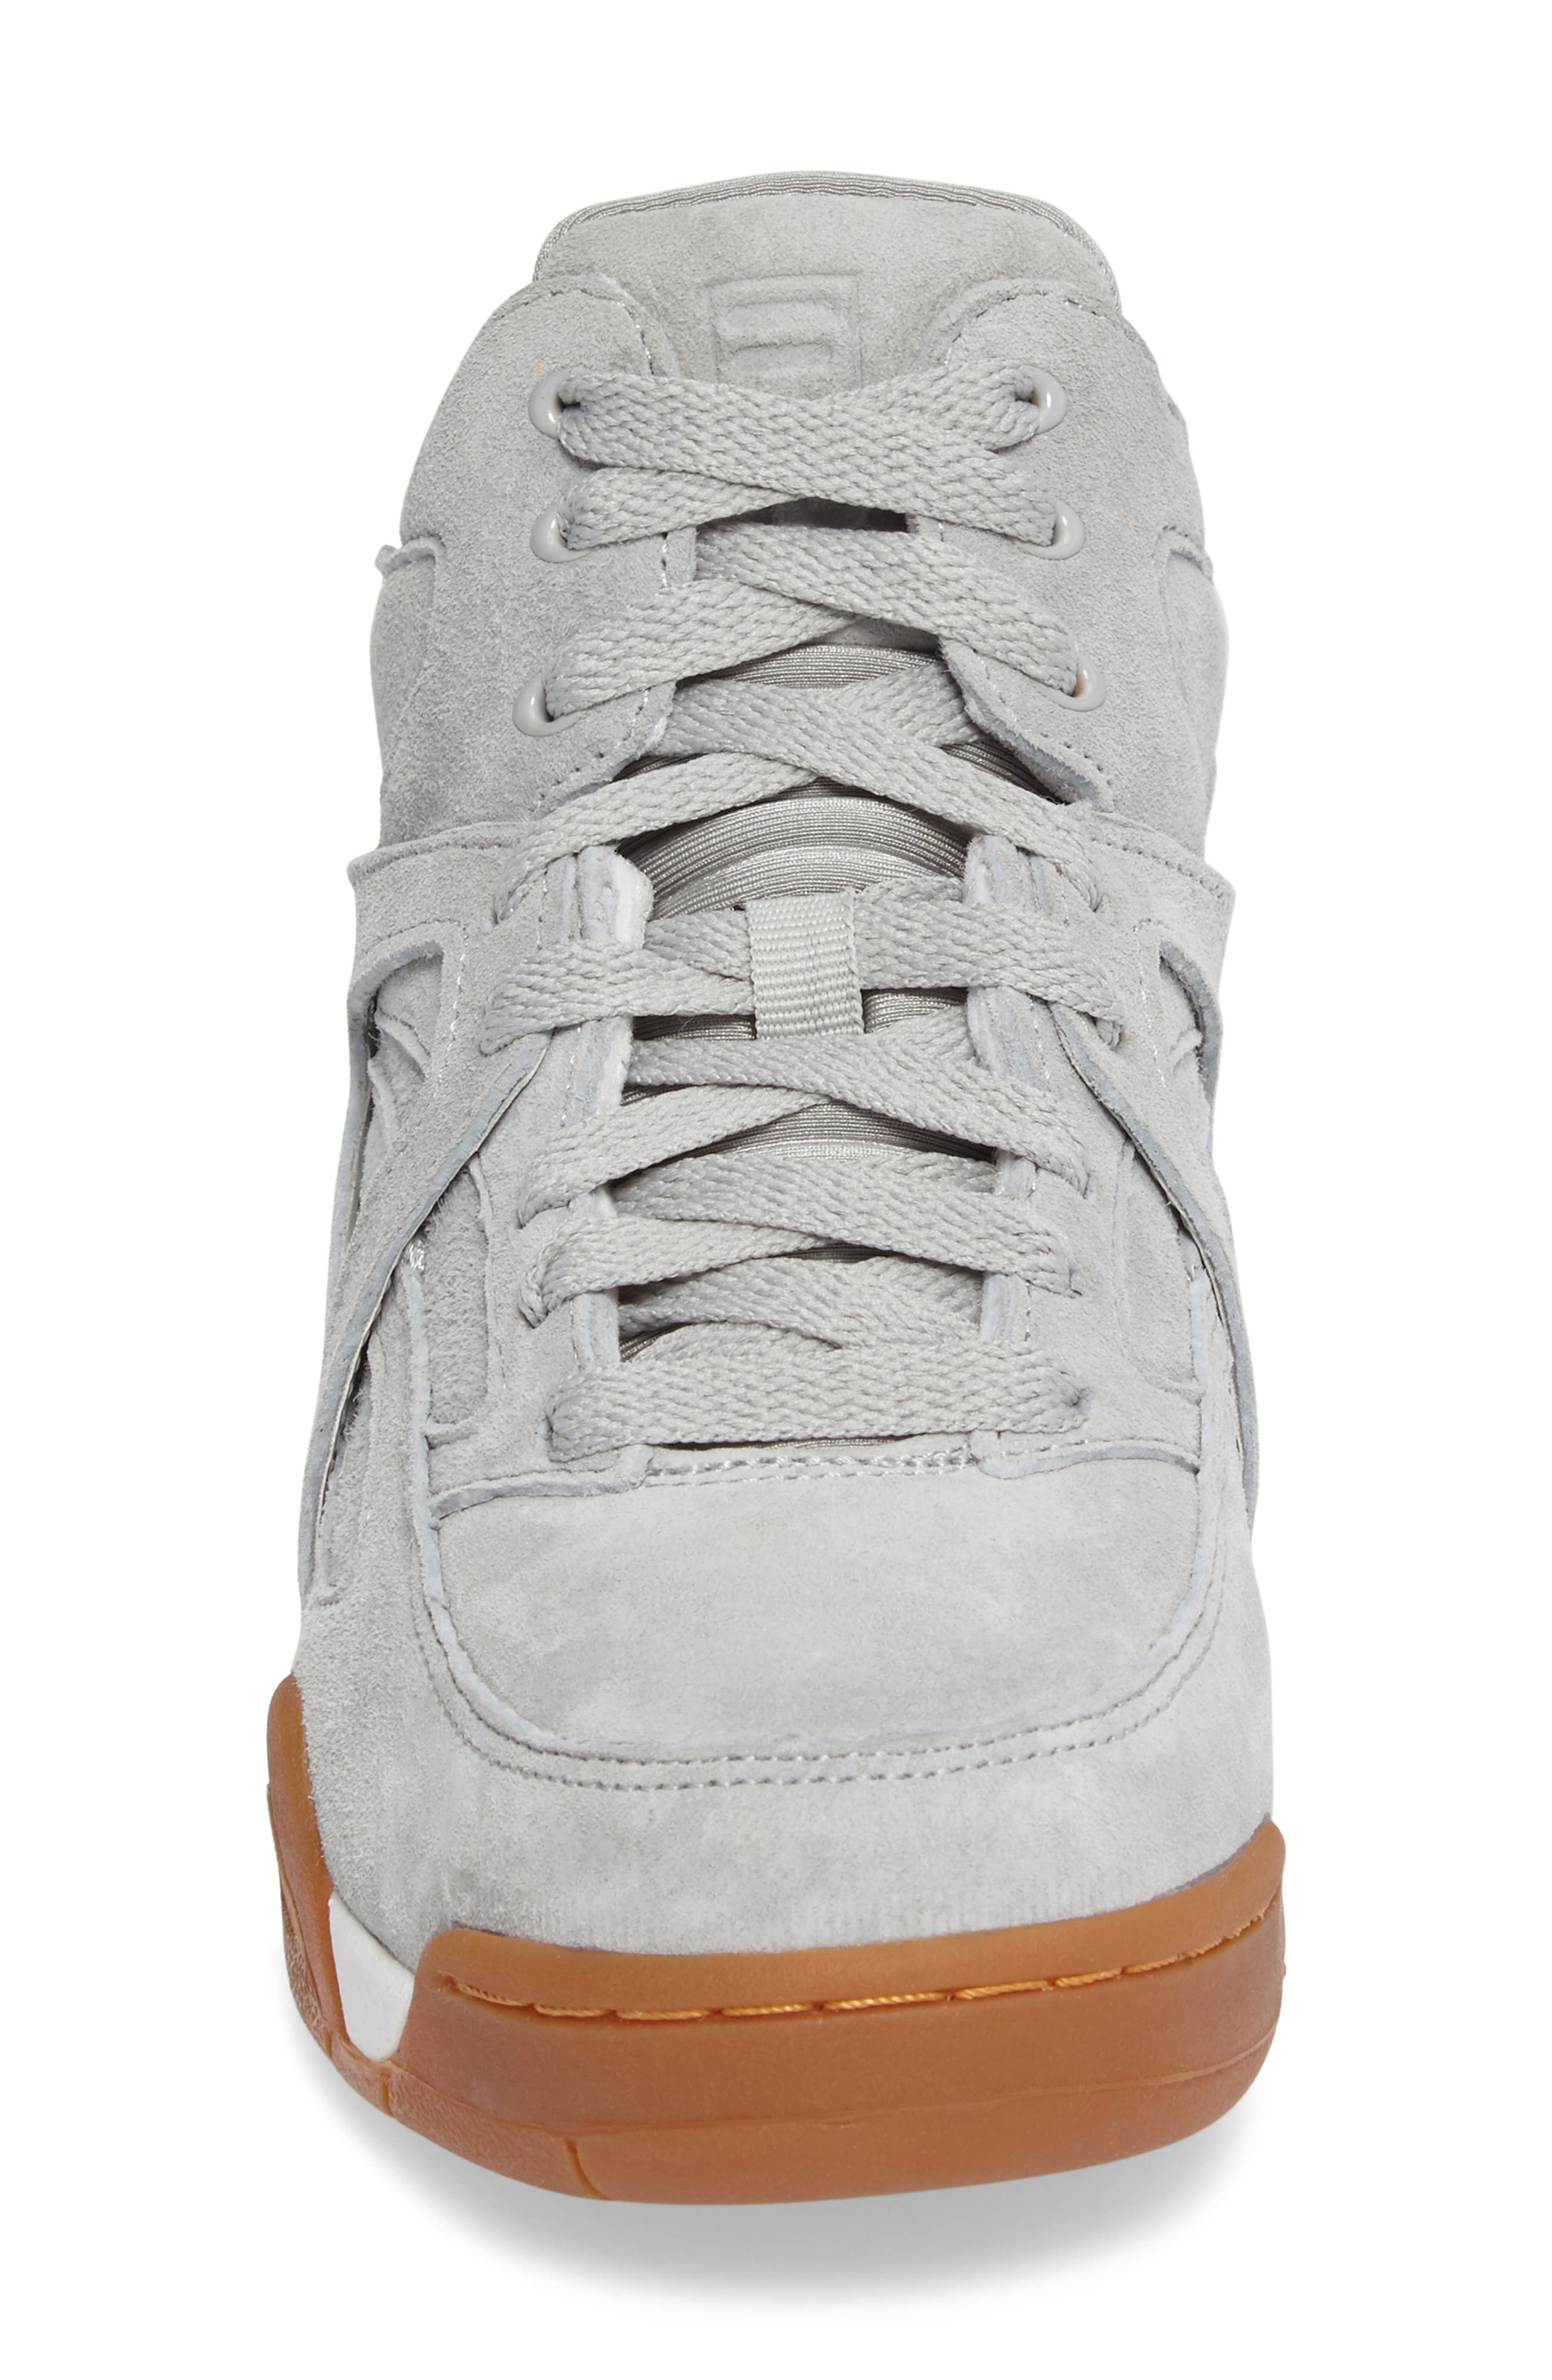 The Cage High Top Sneaker,                             Alternate thumbnail 4, color,                             072